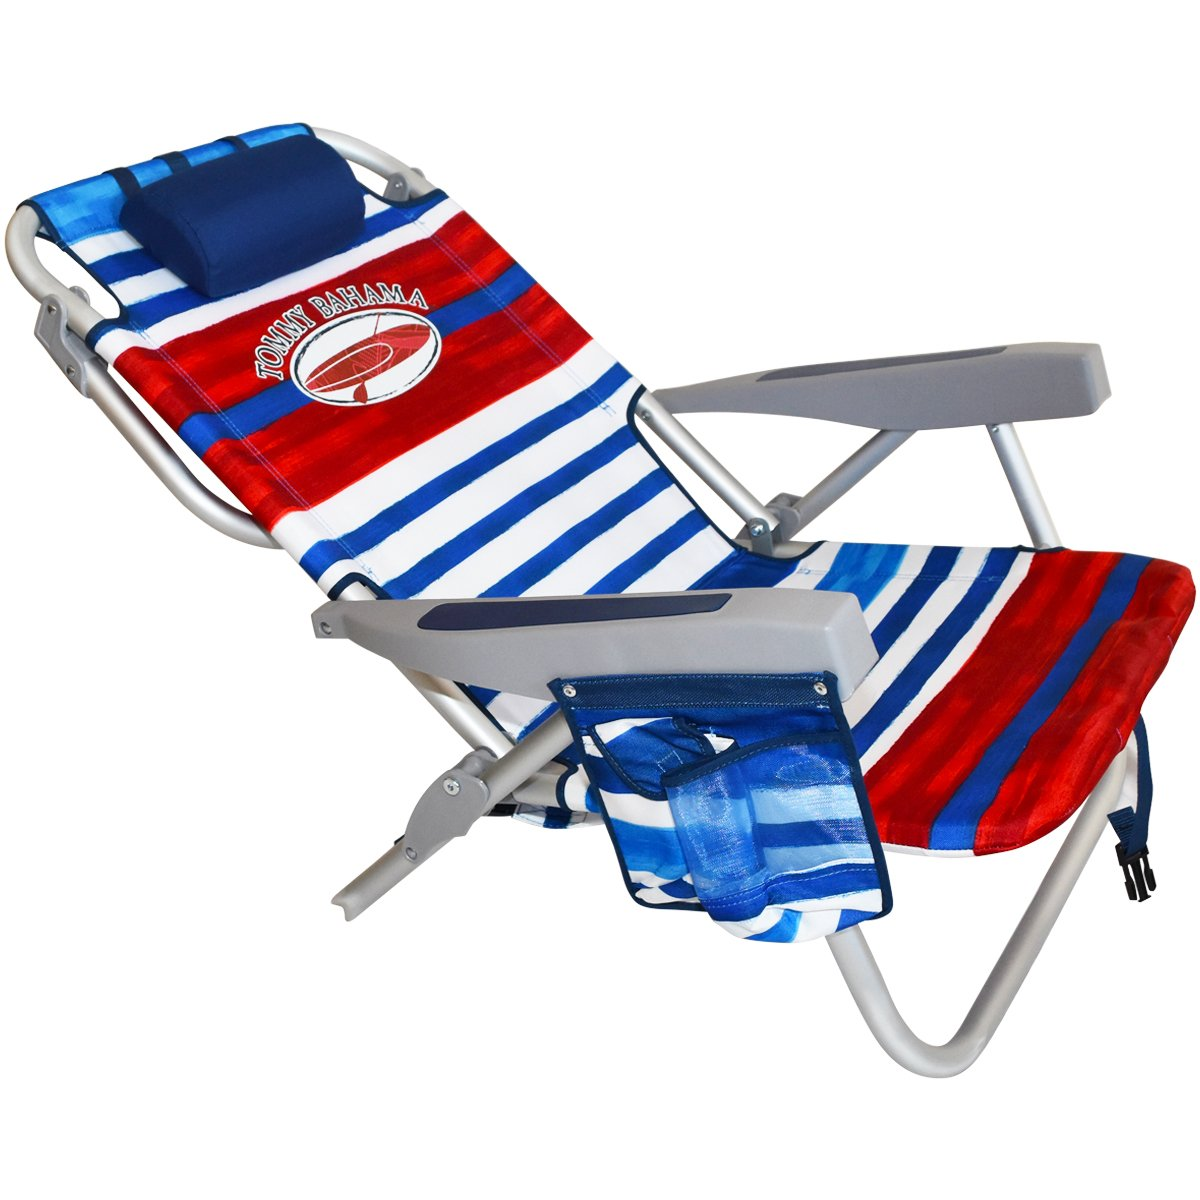 2 Tommy Bahama Backpack Beach Chairs/ Red White Blue Stripes + 1 Medium Tote Bag by Tommy Bahama Beach Gear (Image #5)